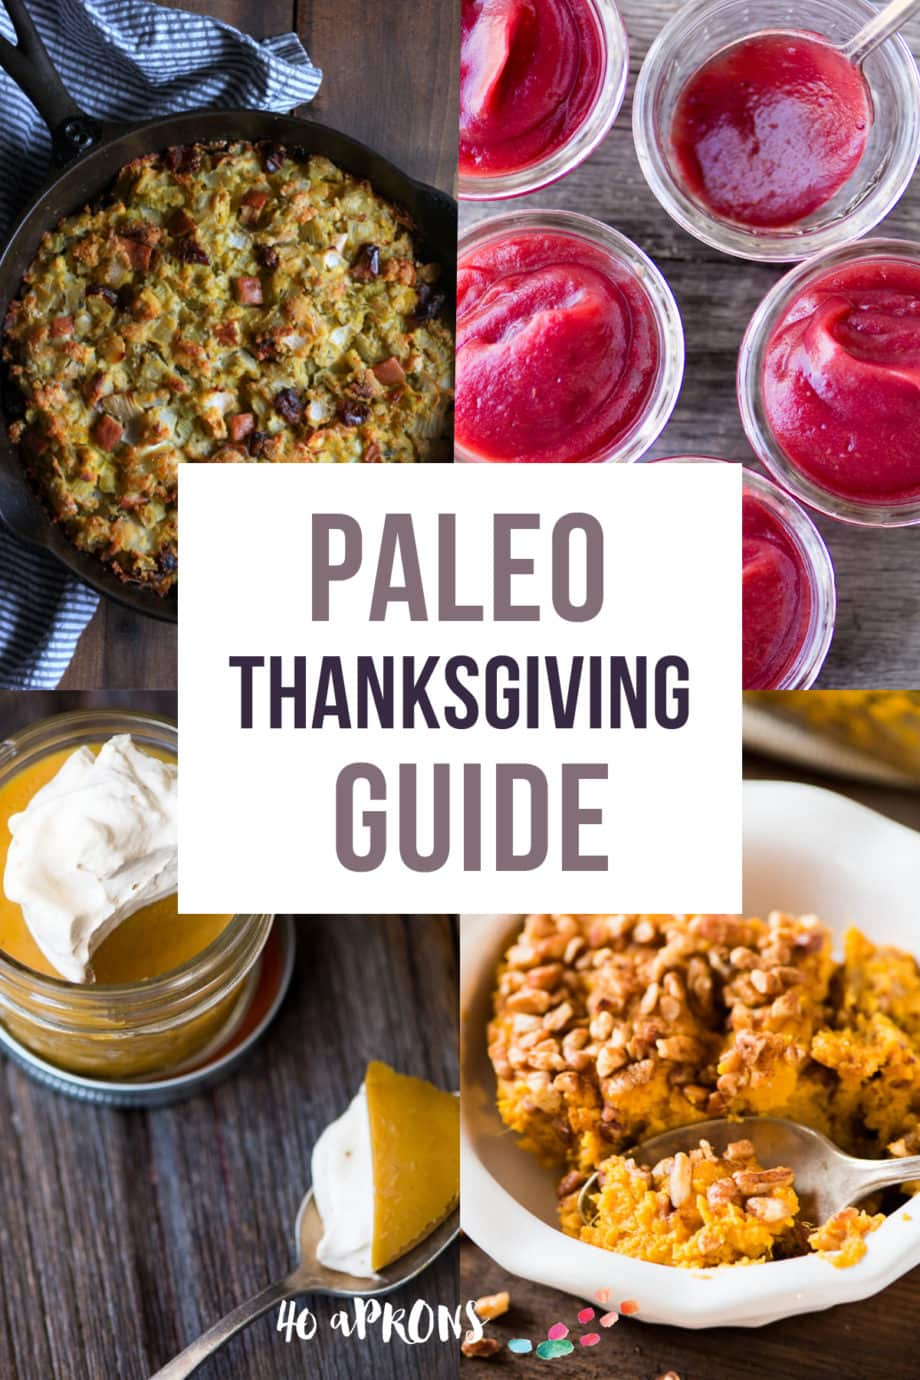 Whole30 Thanksgiving Guide - Whole30 versions of every classic Thanksgiving dish so you can indulge in a healthy way!